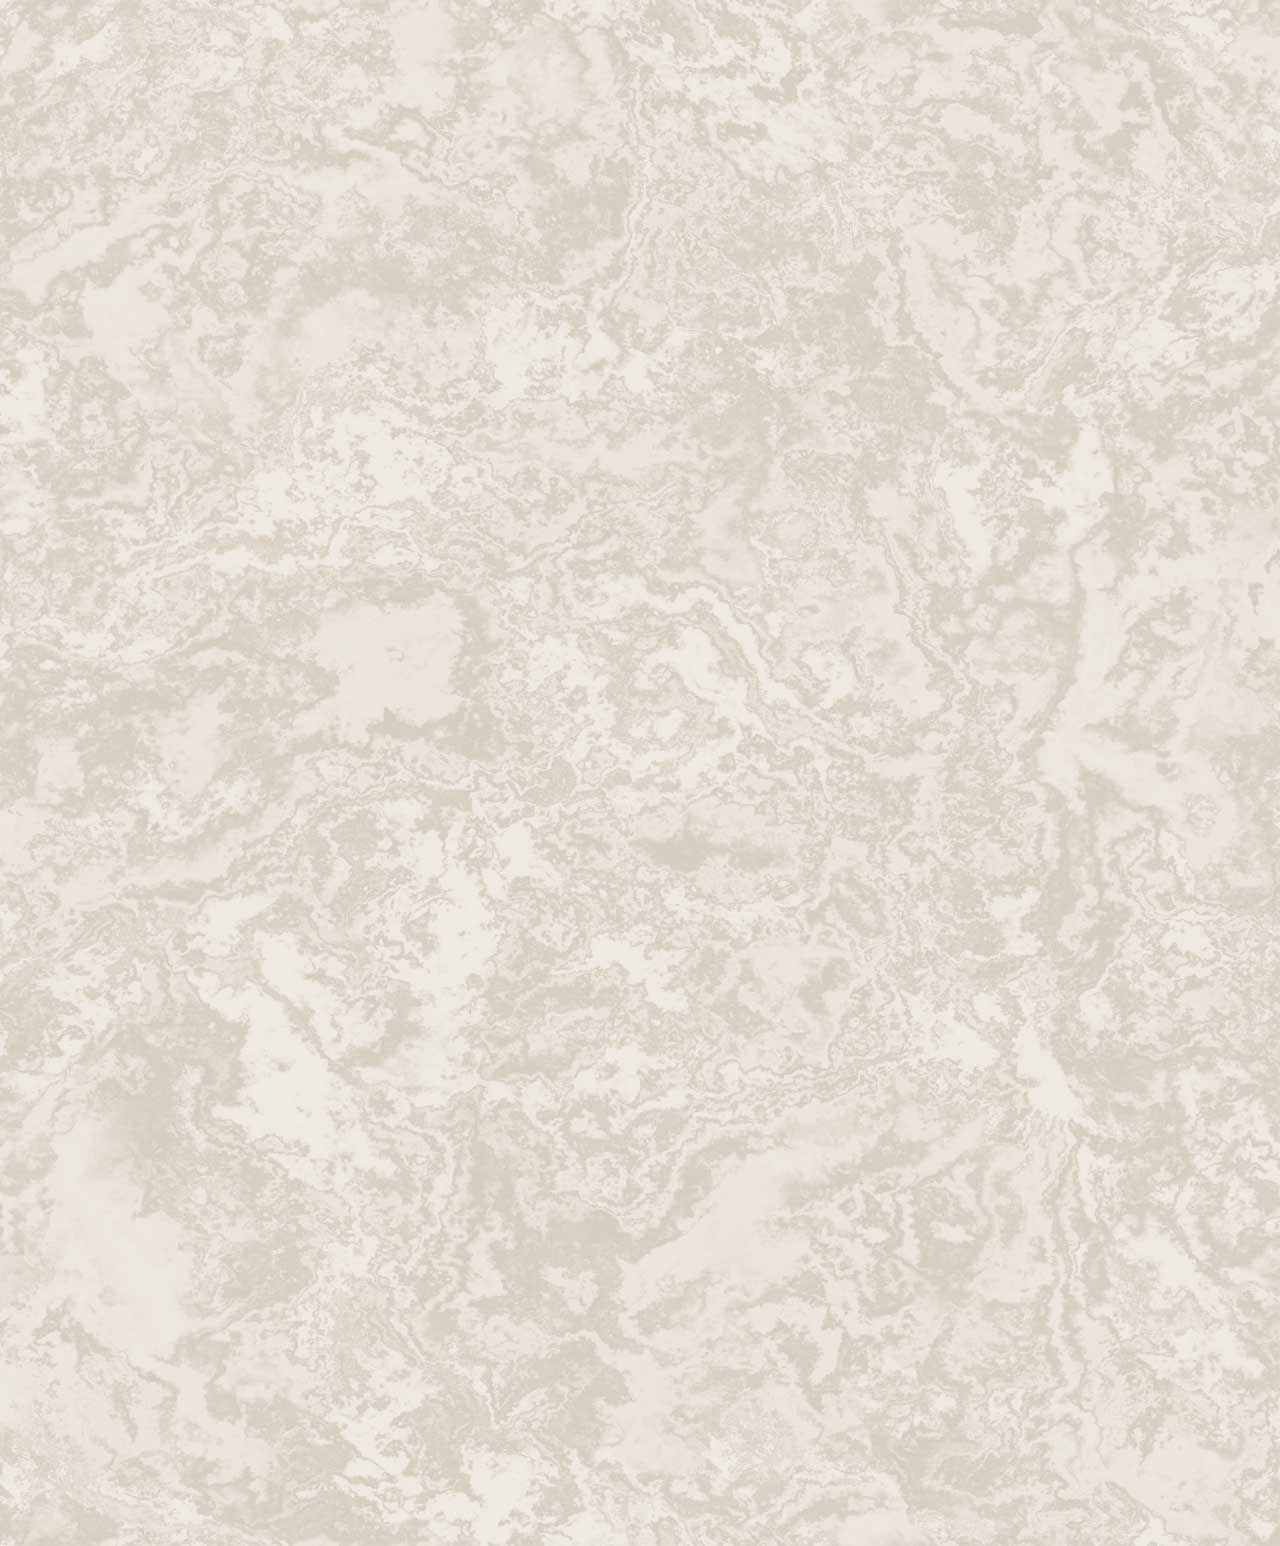 Capri-Luxury-Wallpaper-CP00707-CLOUD-MARBLE